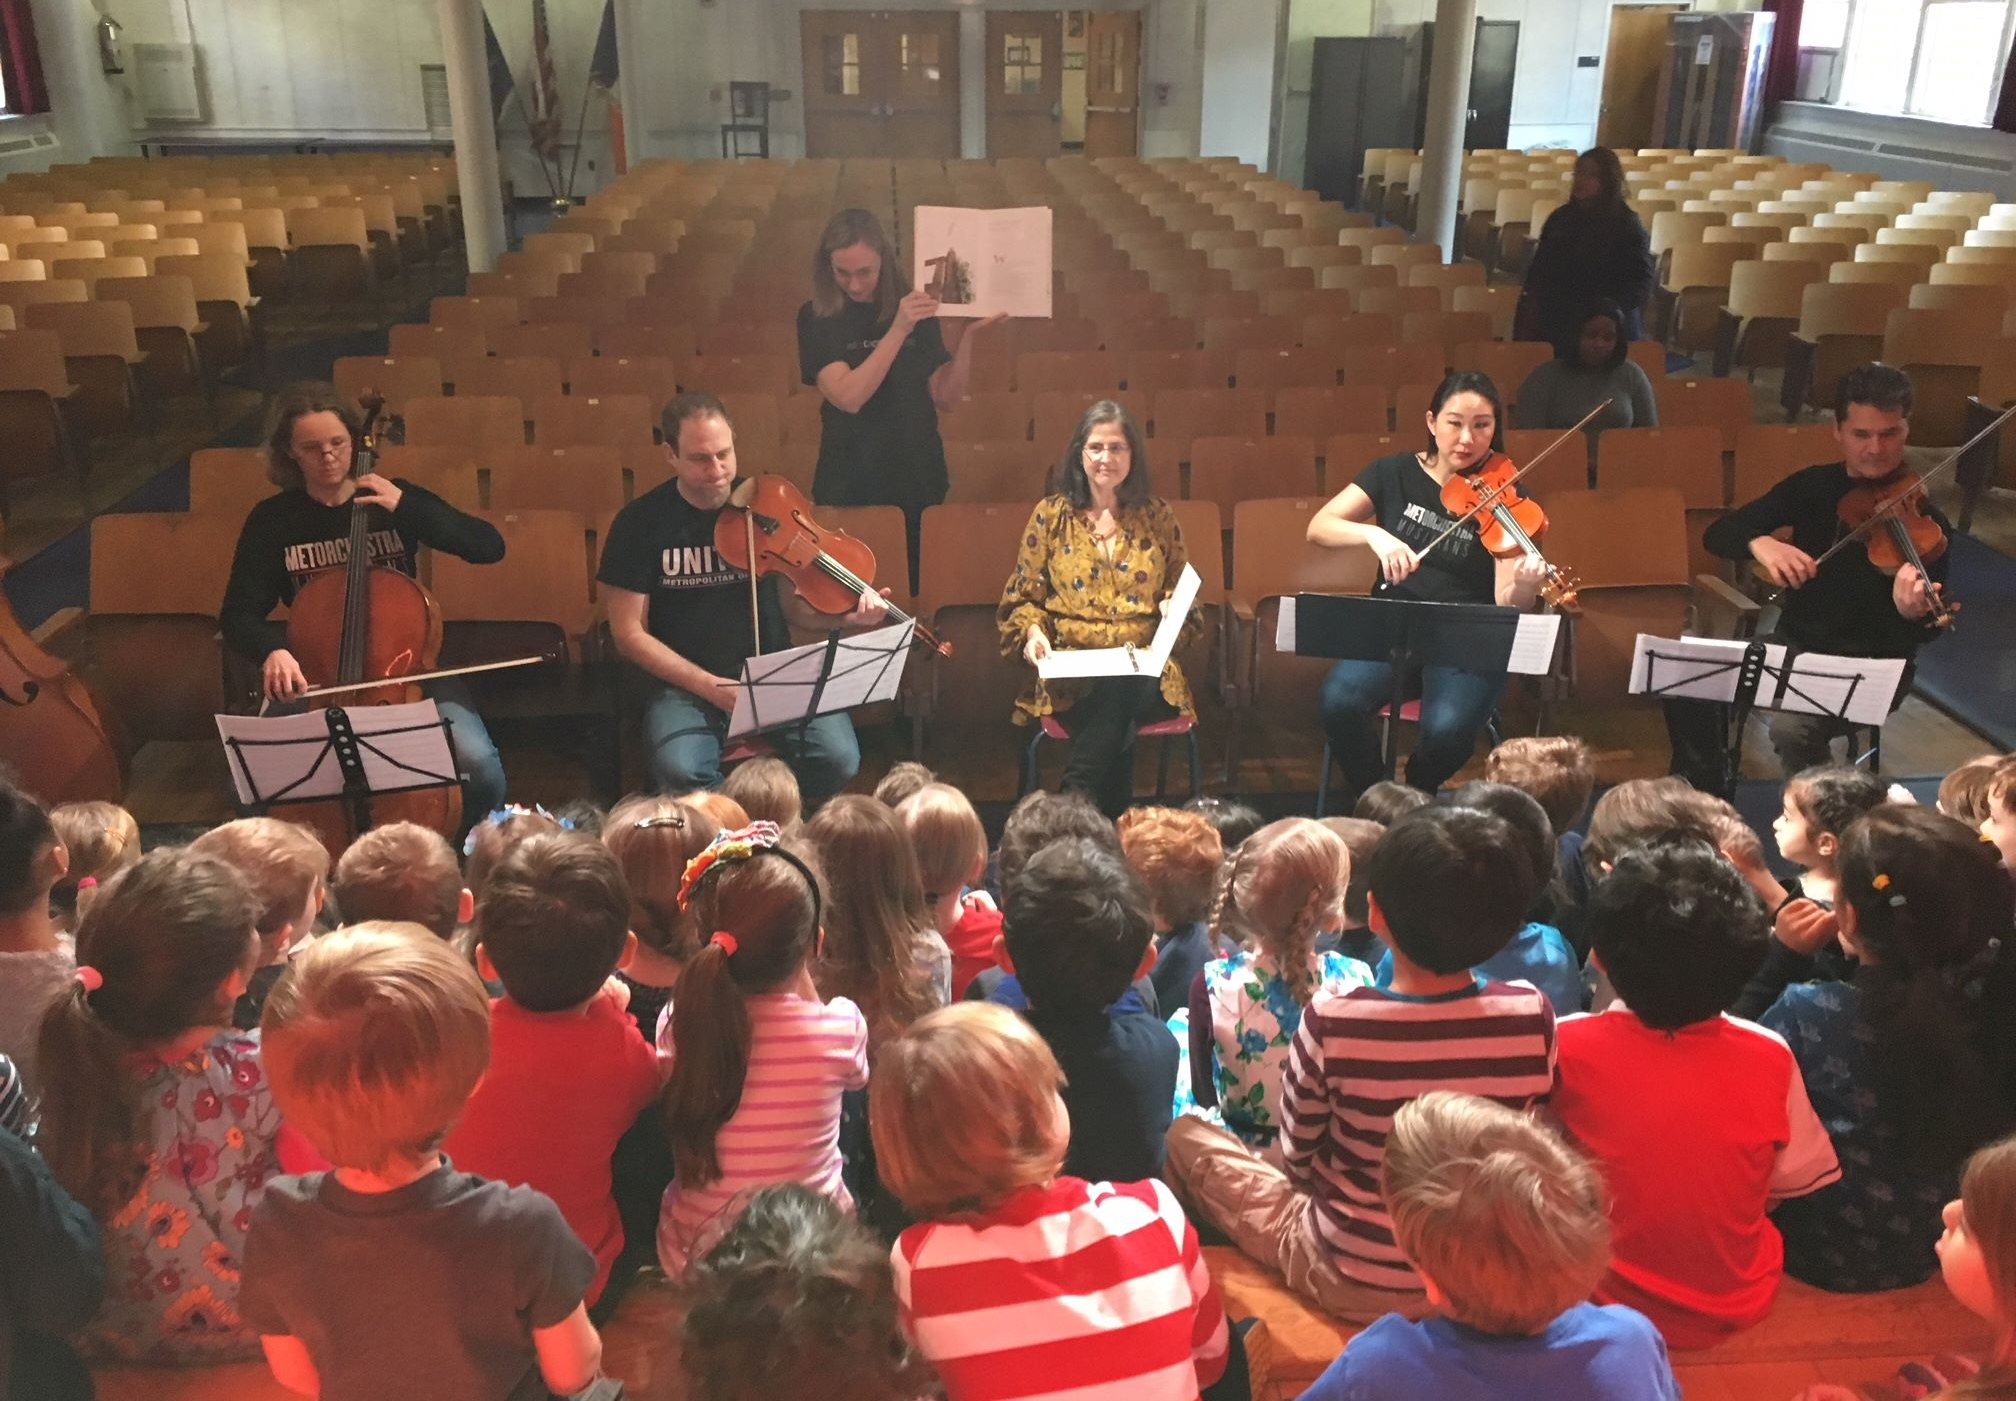 Met Chorister Karen Dixon, Met Orchestra Musicians Kari Docter, Dov Scheindlin, Katherine Fong, and Bruno Eicher, and NYC Council Member Helen Rosenthal enthralling a group of Kindergartners at PS 166.